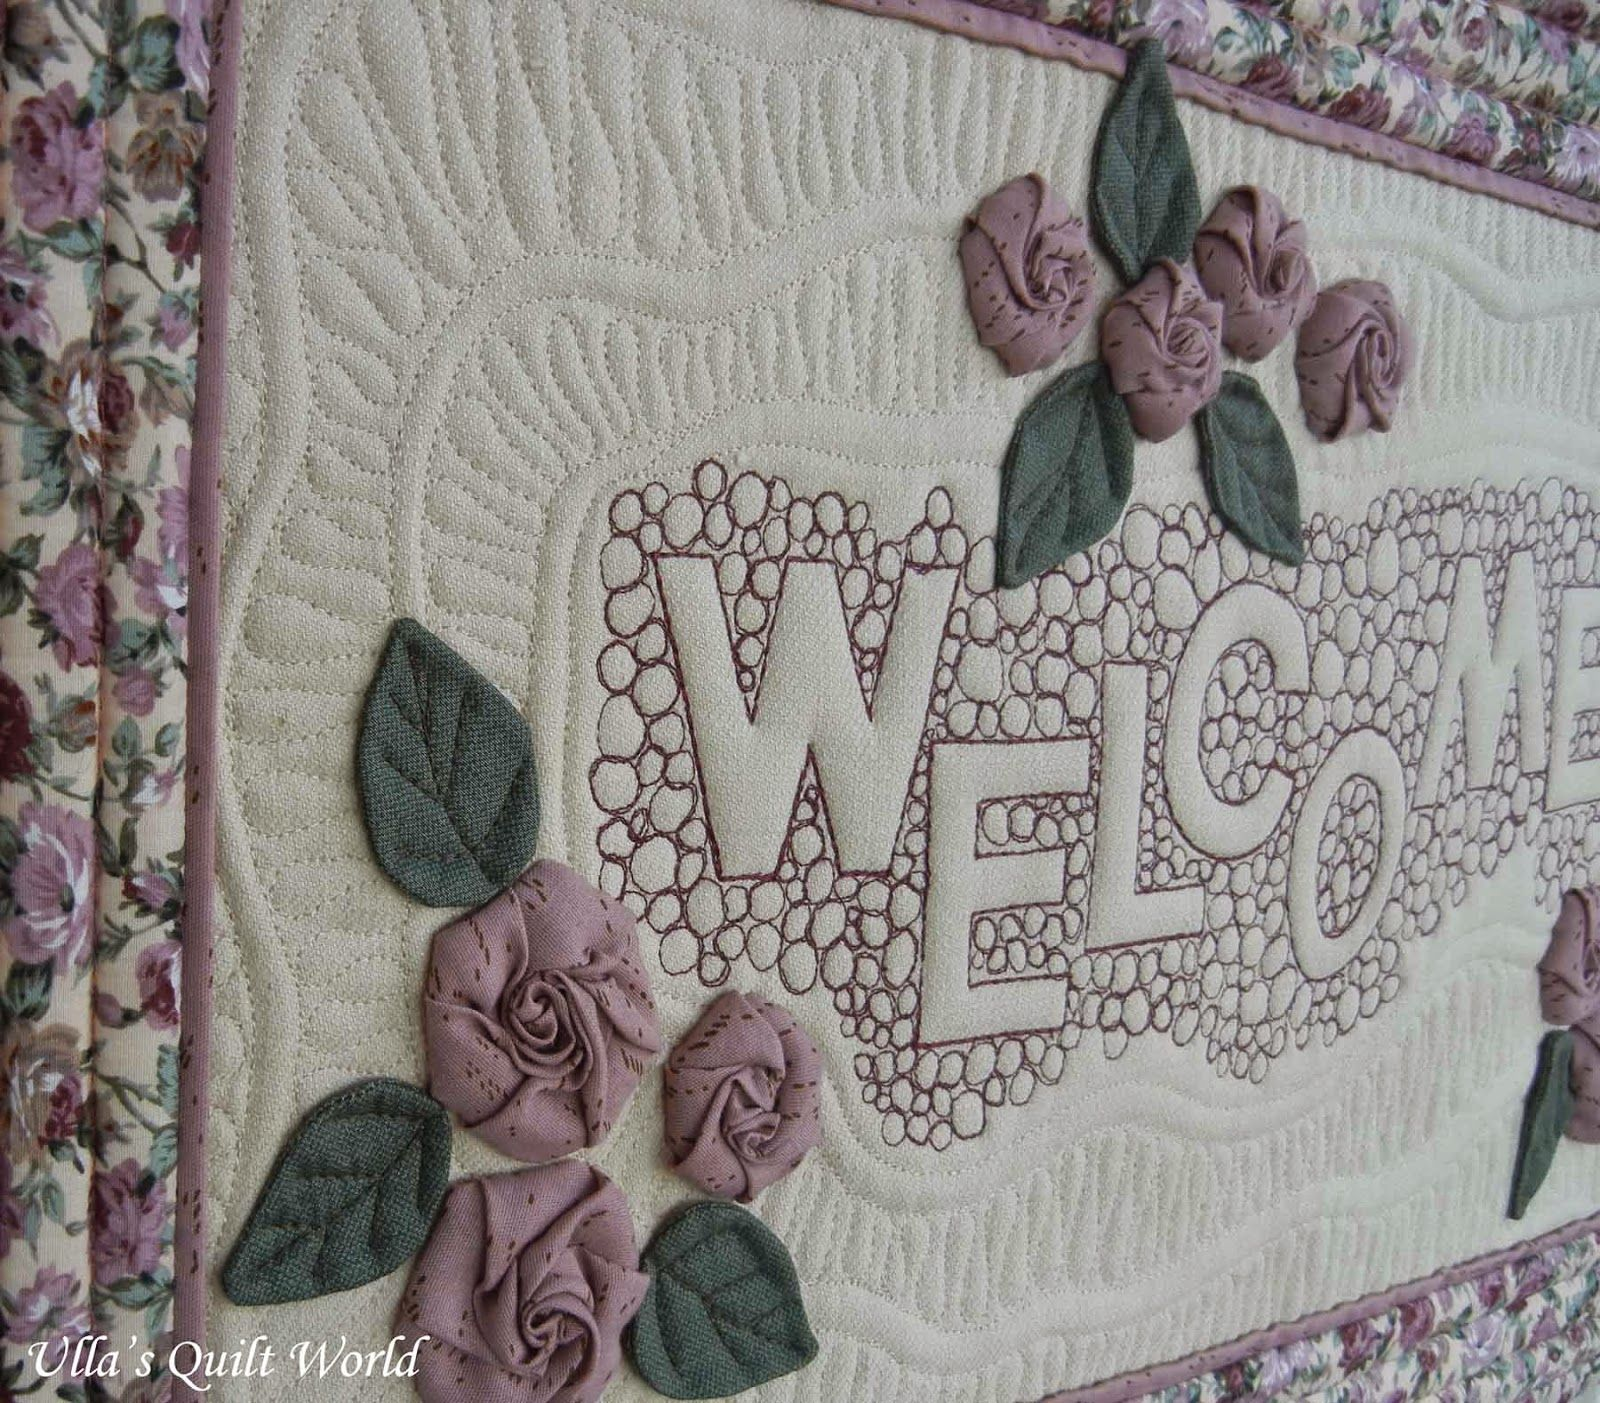 Ulla's Quilt World: Welcome quilt - Roses and free motion quilting